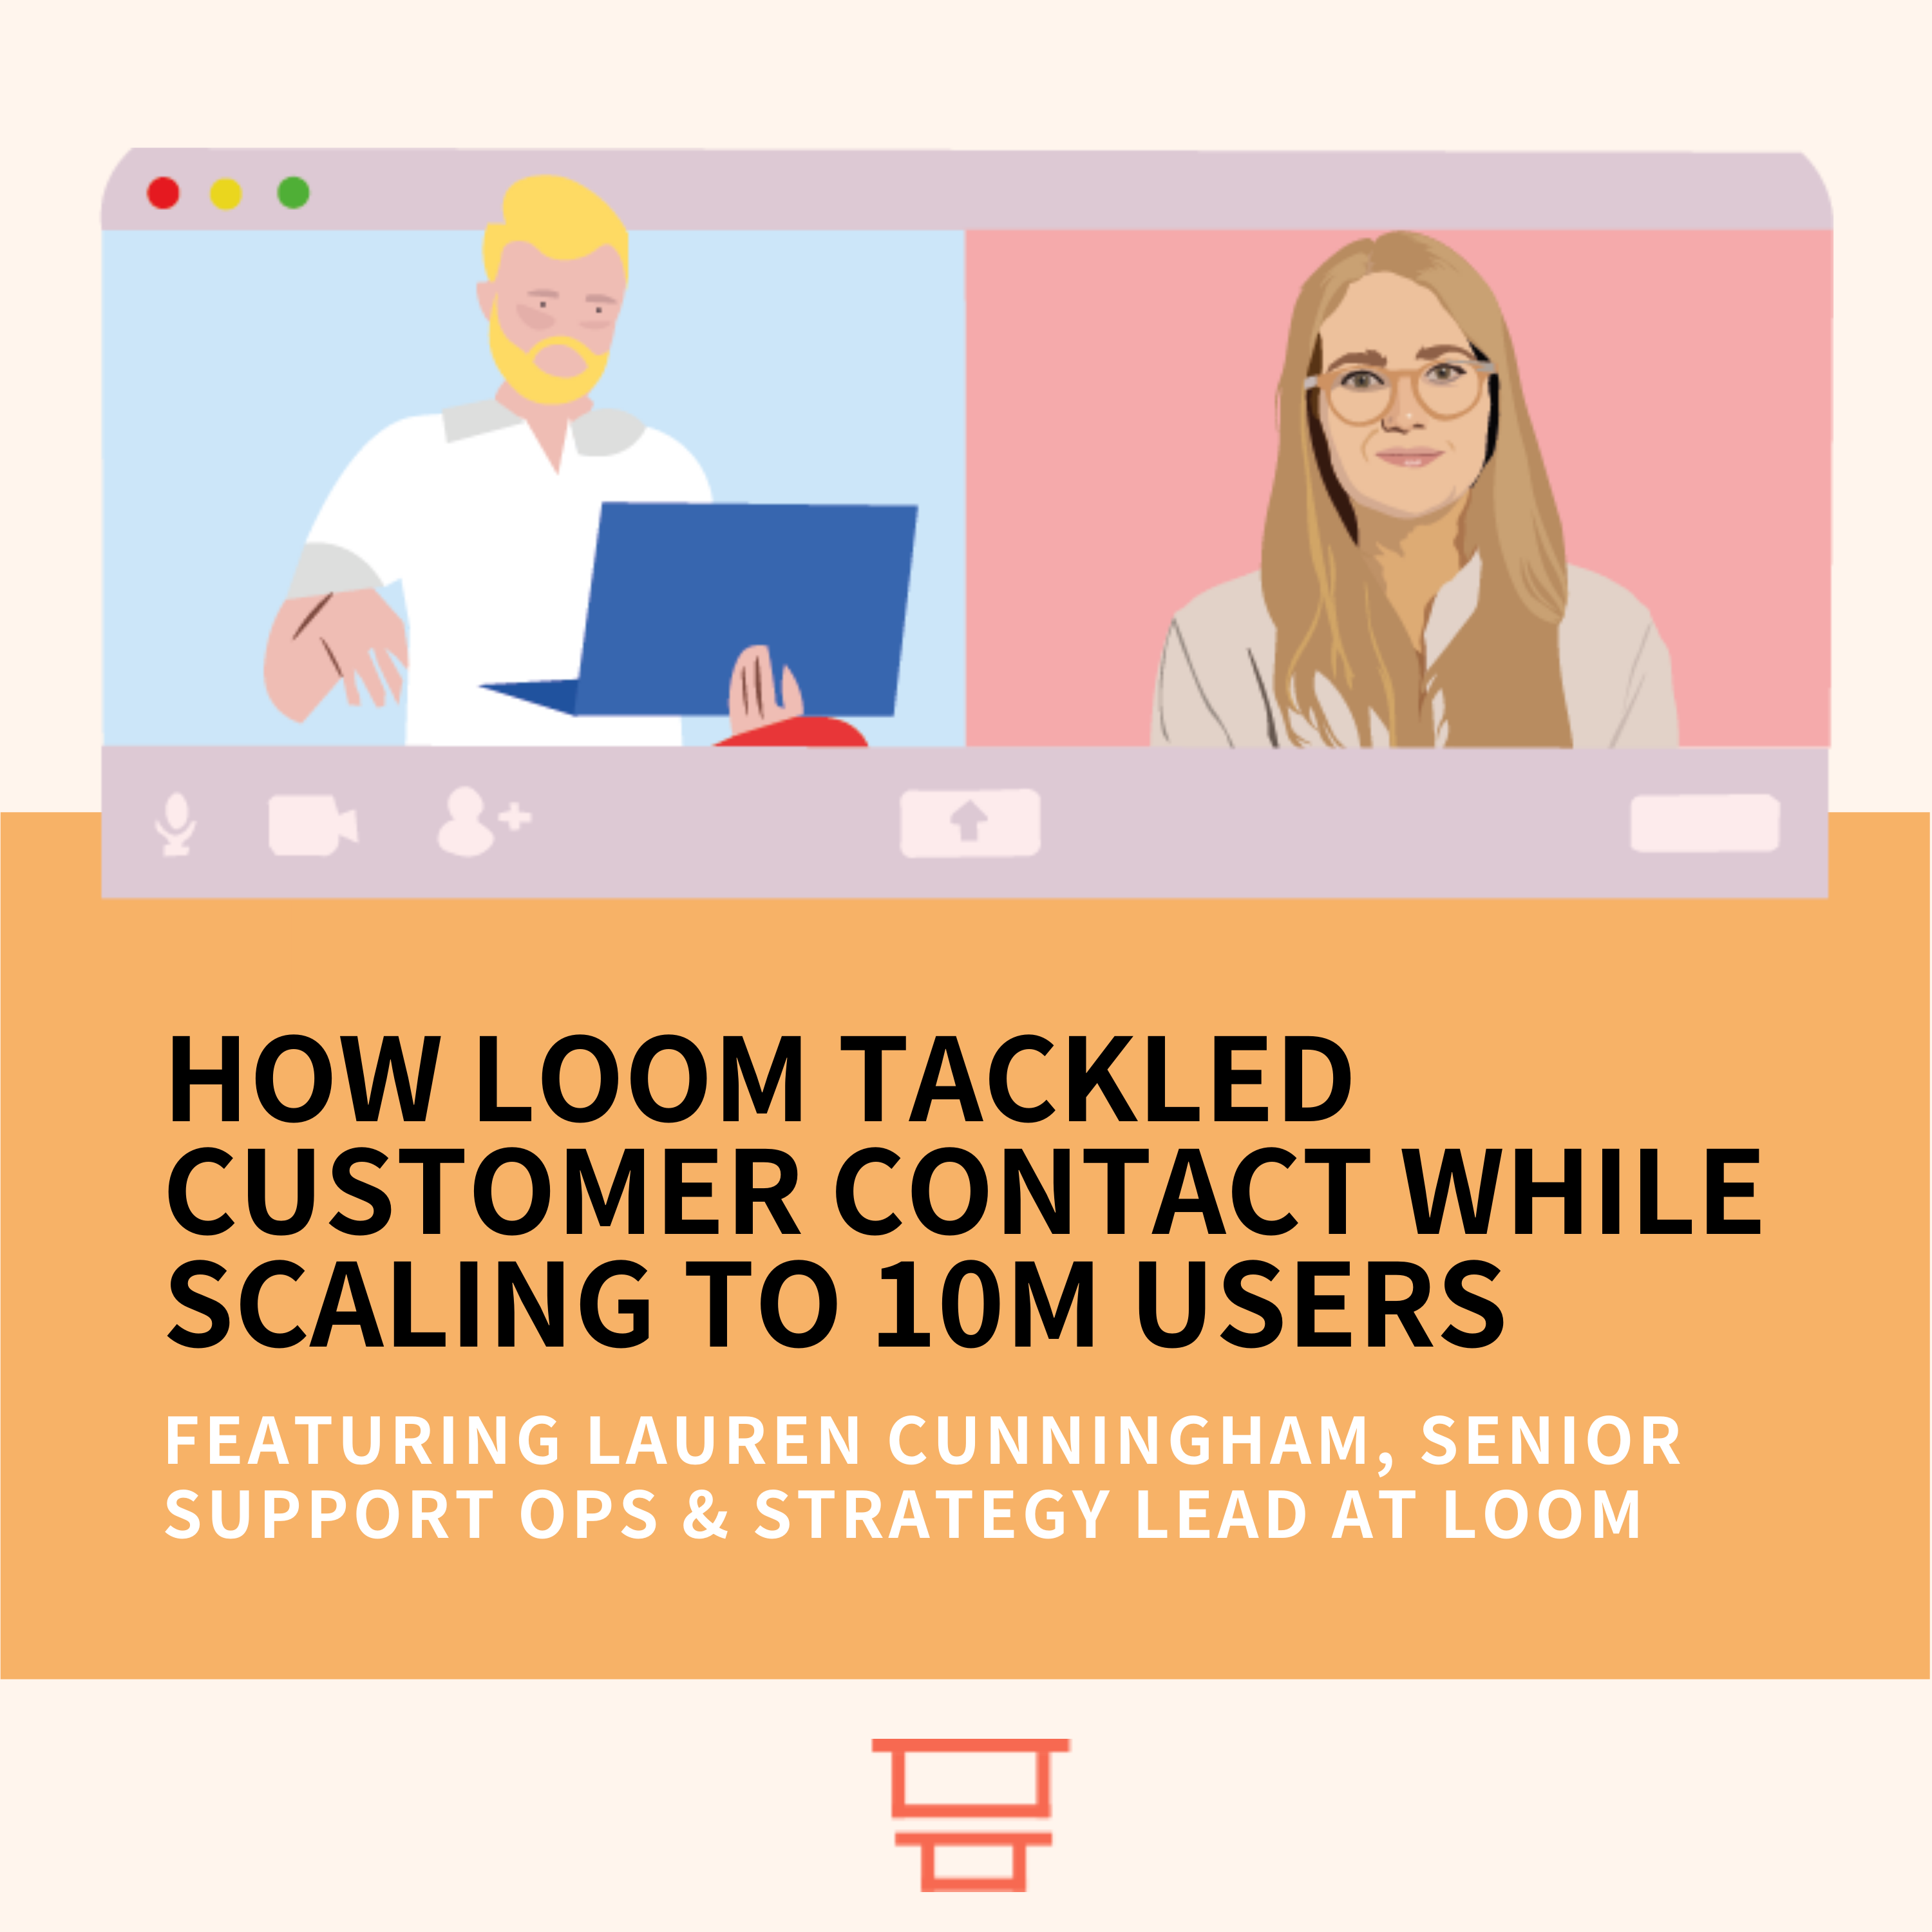 Interview with Lauren Cunningham, Senior Support Ops & Strategy Lead at Loom